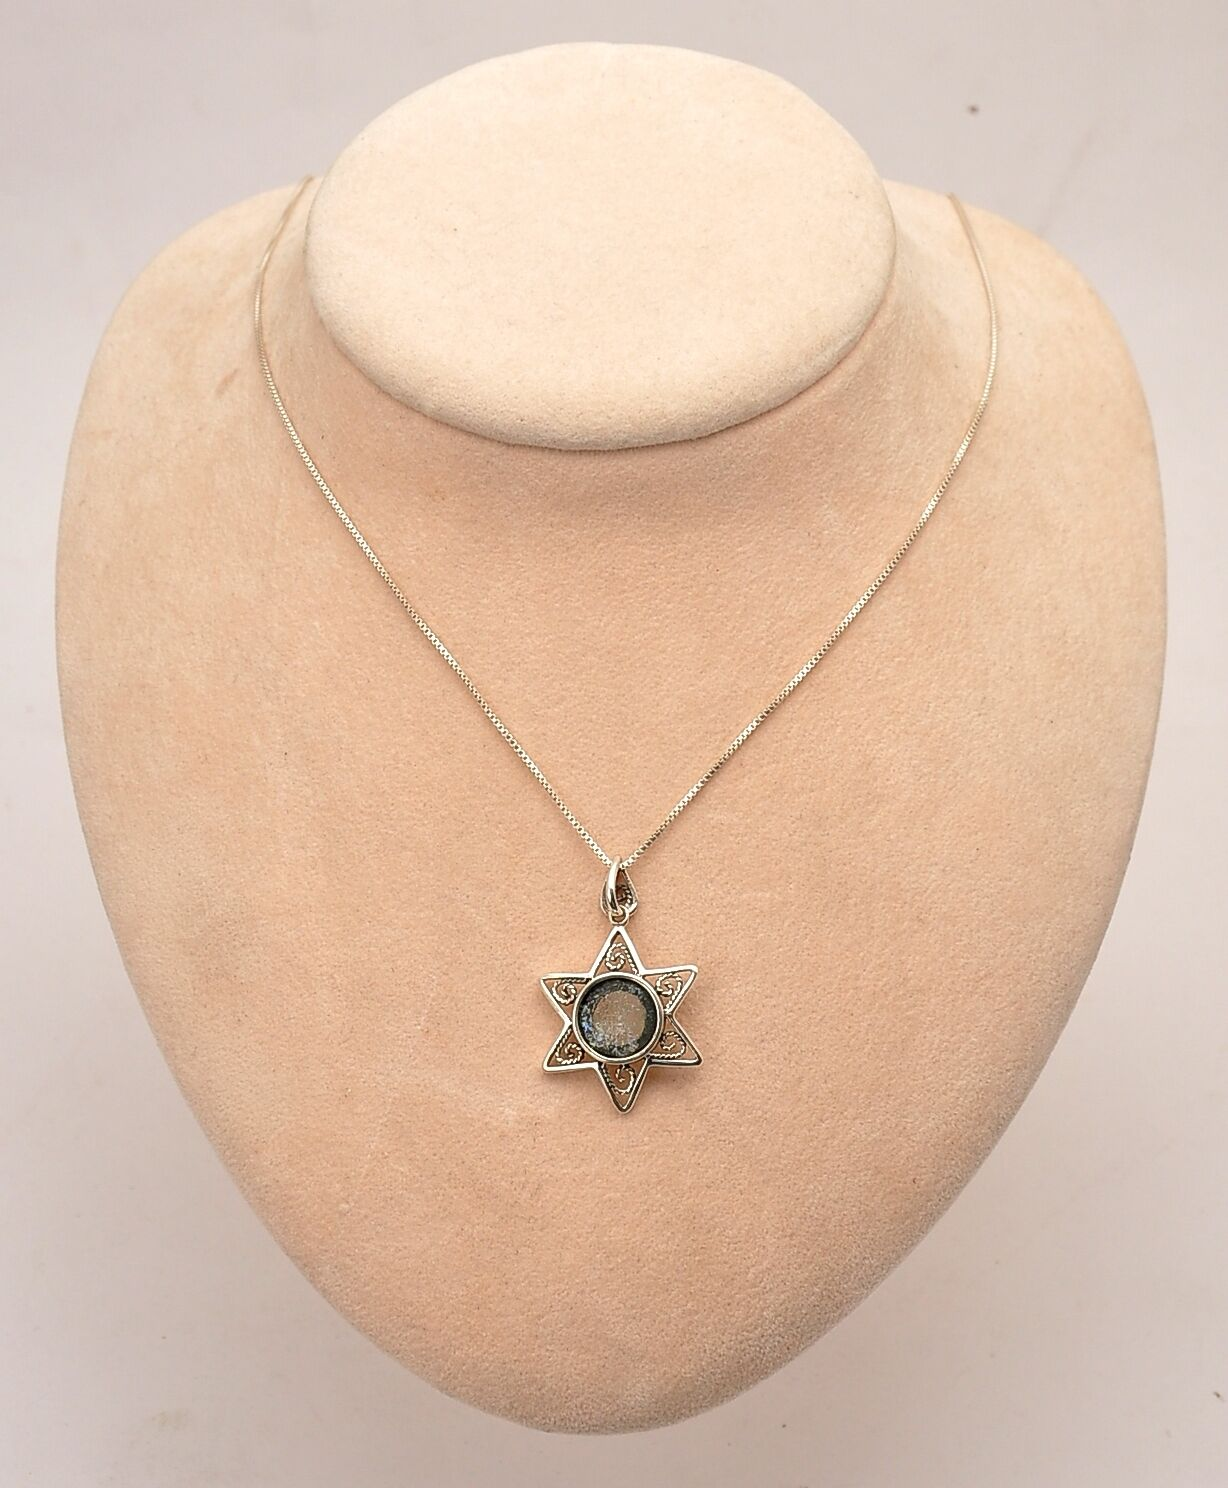 Roman Glass Magen David In Necklace Sterling Silver 925.